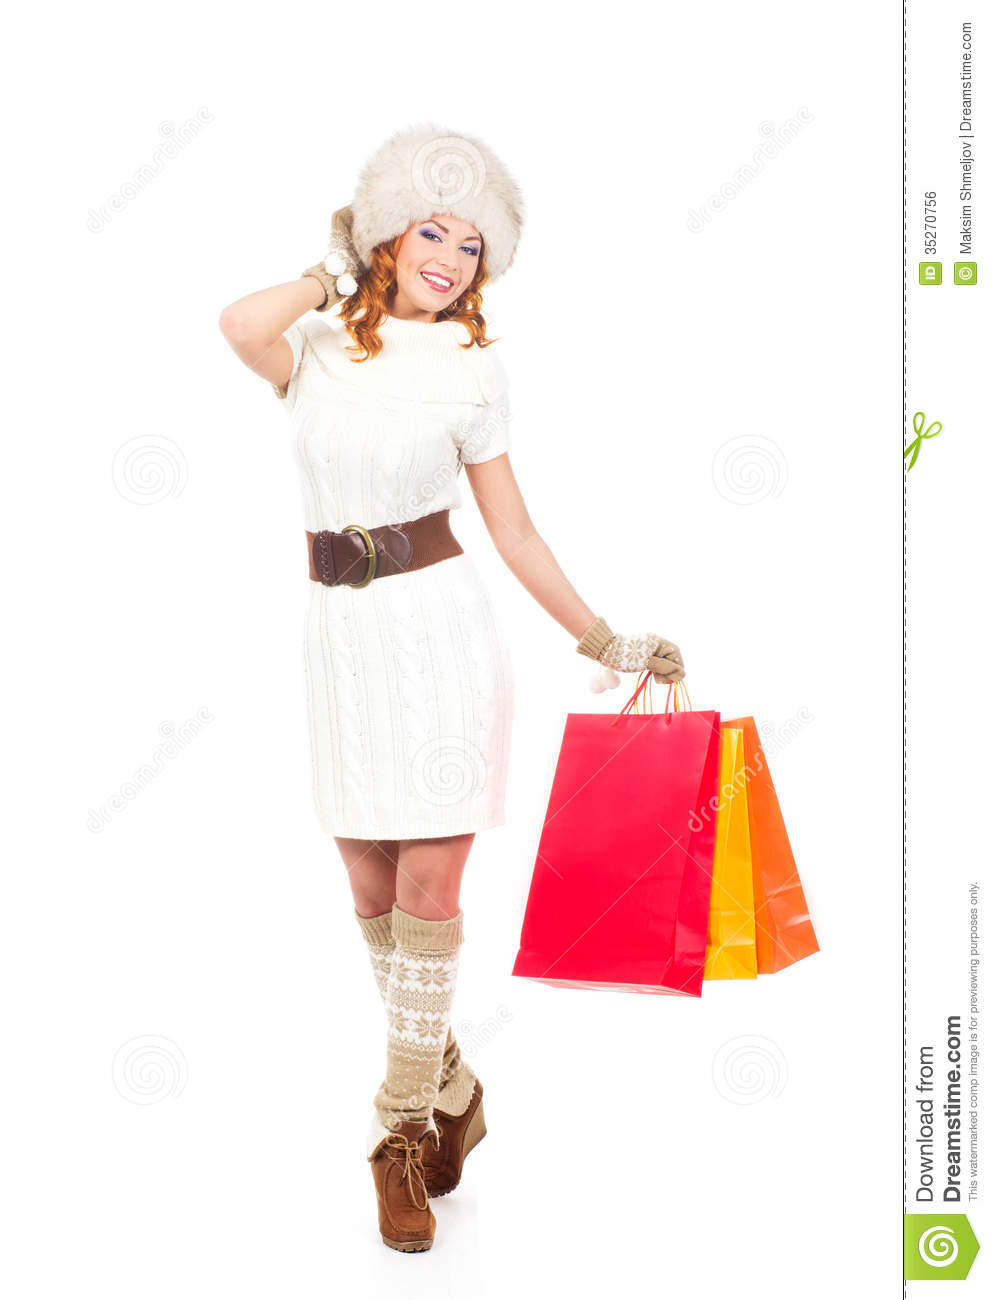 Woman posing with shopping bags isolated on white background full - Background Happy Isolated Shopping White Winter Woman